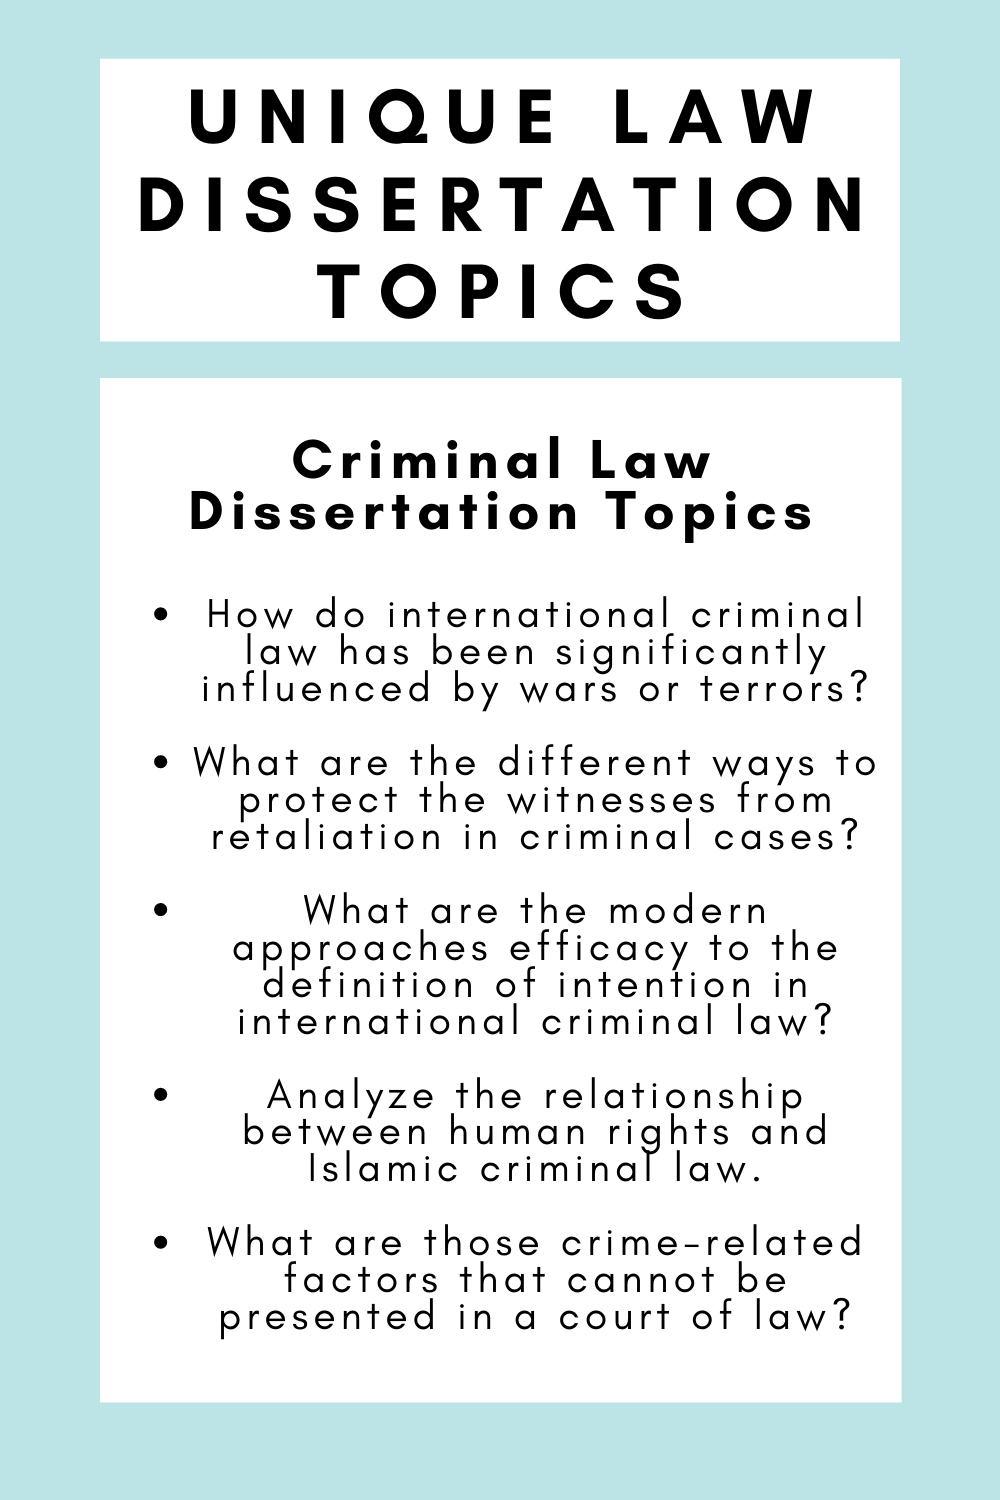 25 Unique Law Dissertation Topic For Student In 2020 Book Writing Tip Academic Service Crime Topics Youth Idea White Collar